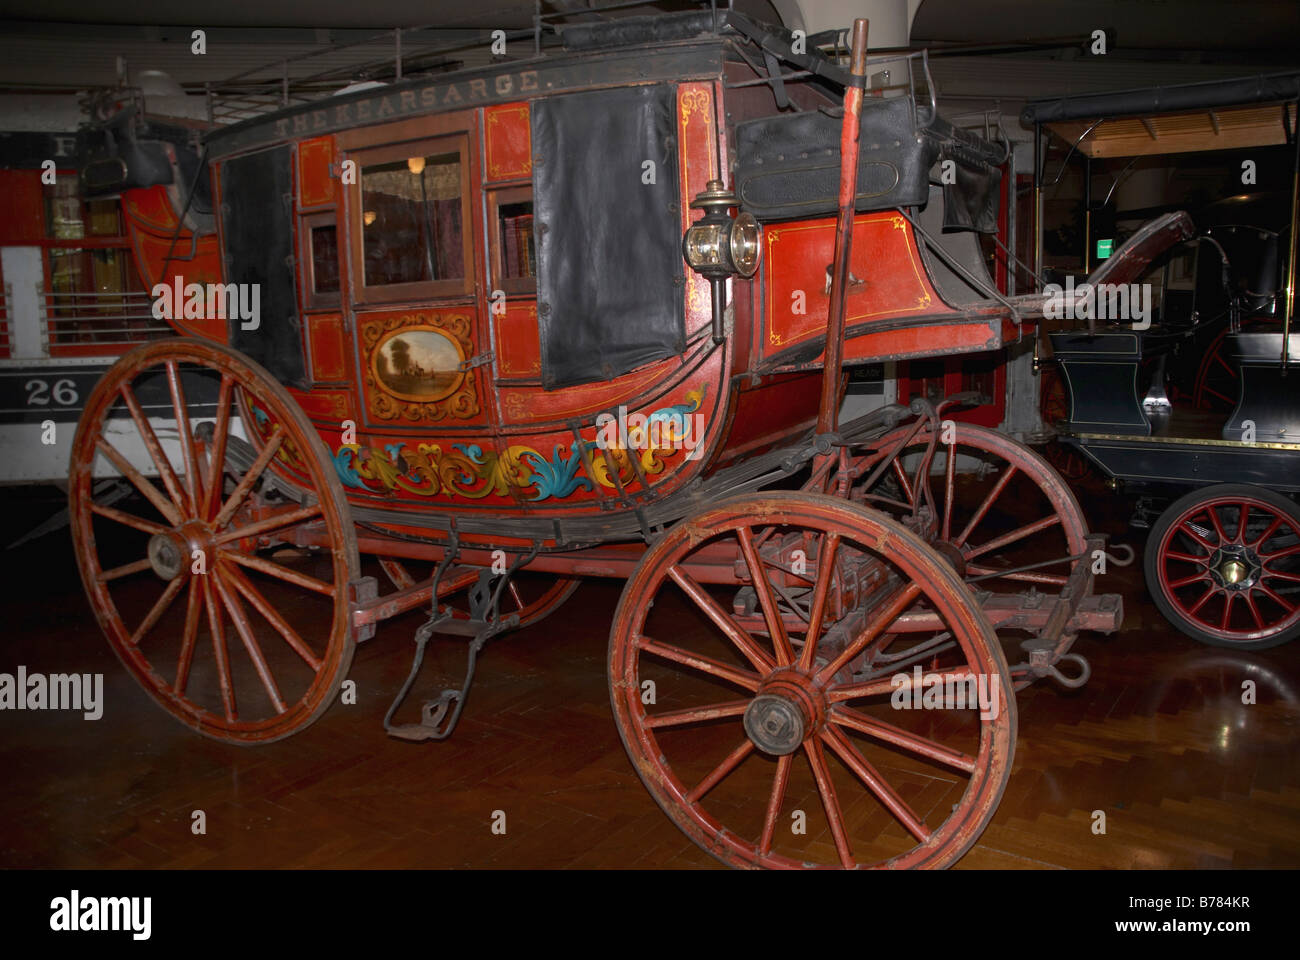 the concord coach an 1885 stagecoach stock photo: 21692267 - alamy